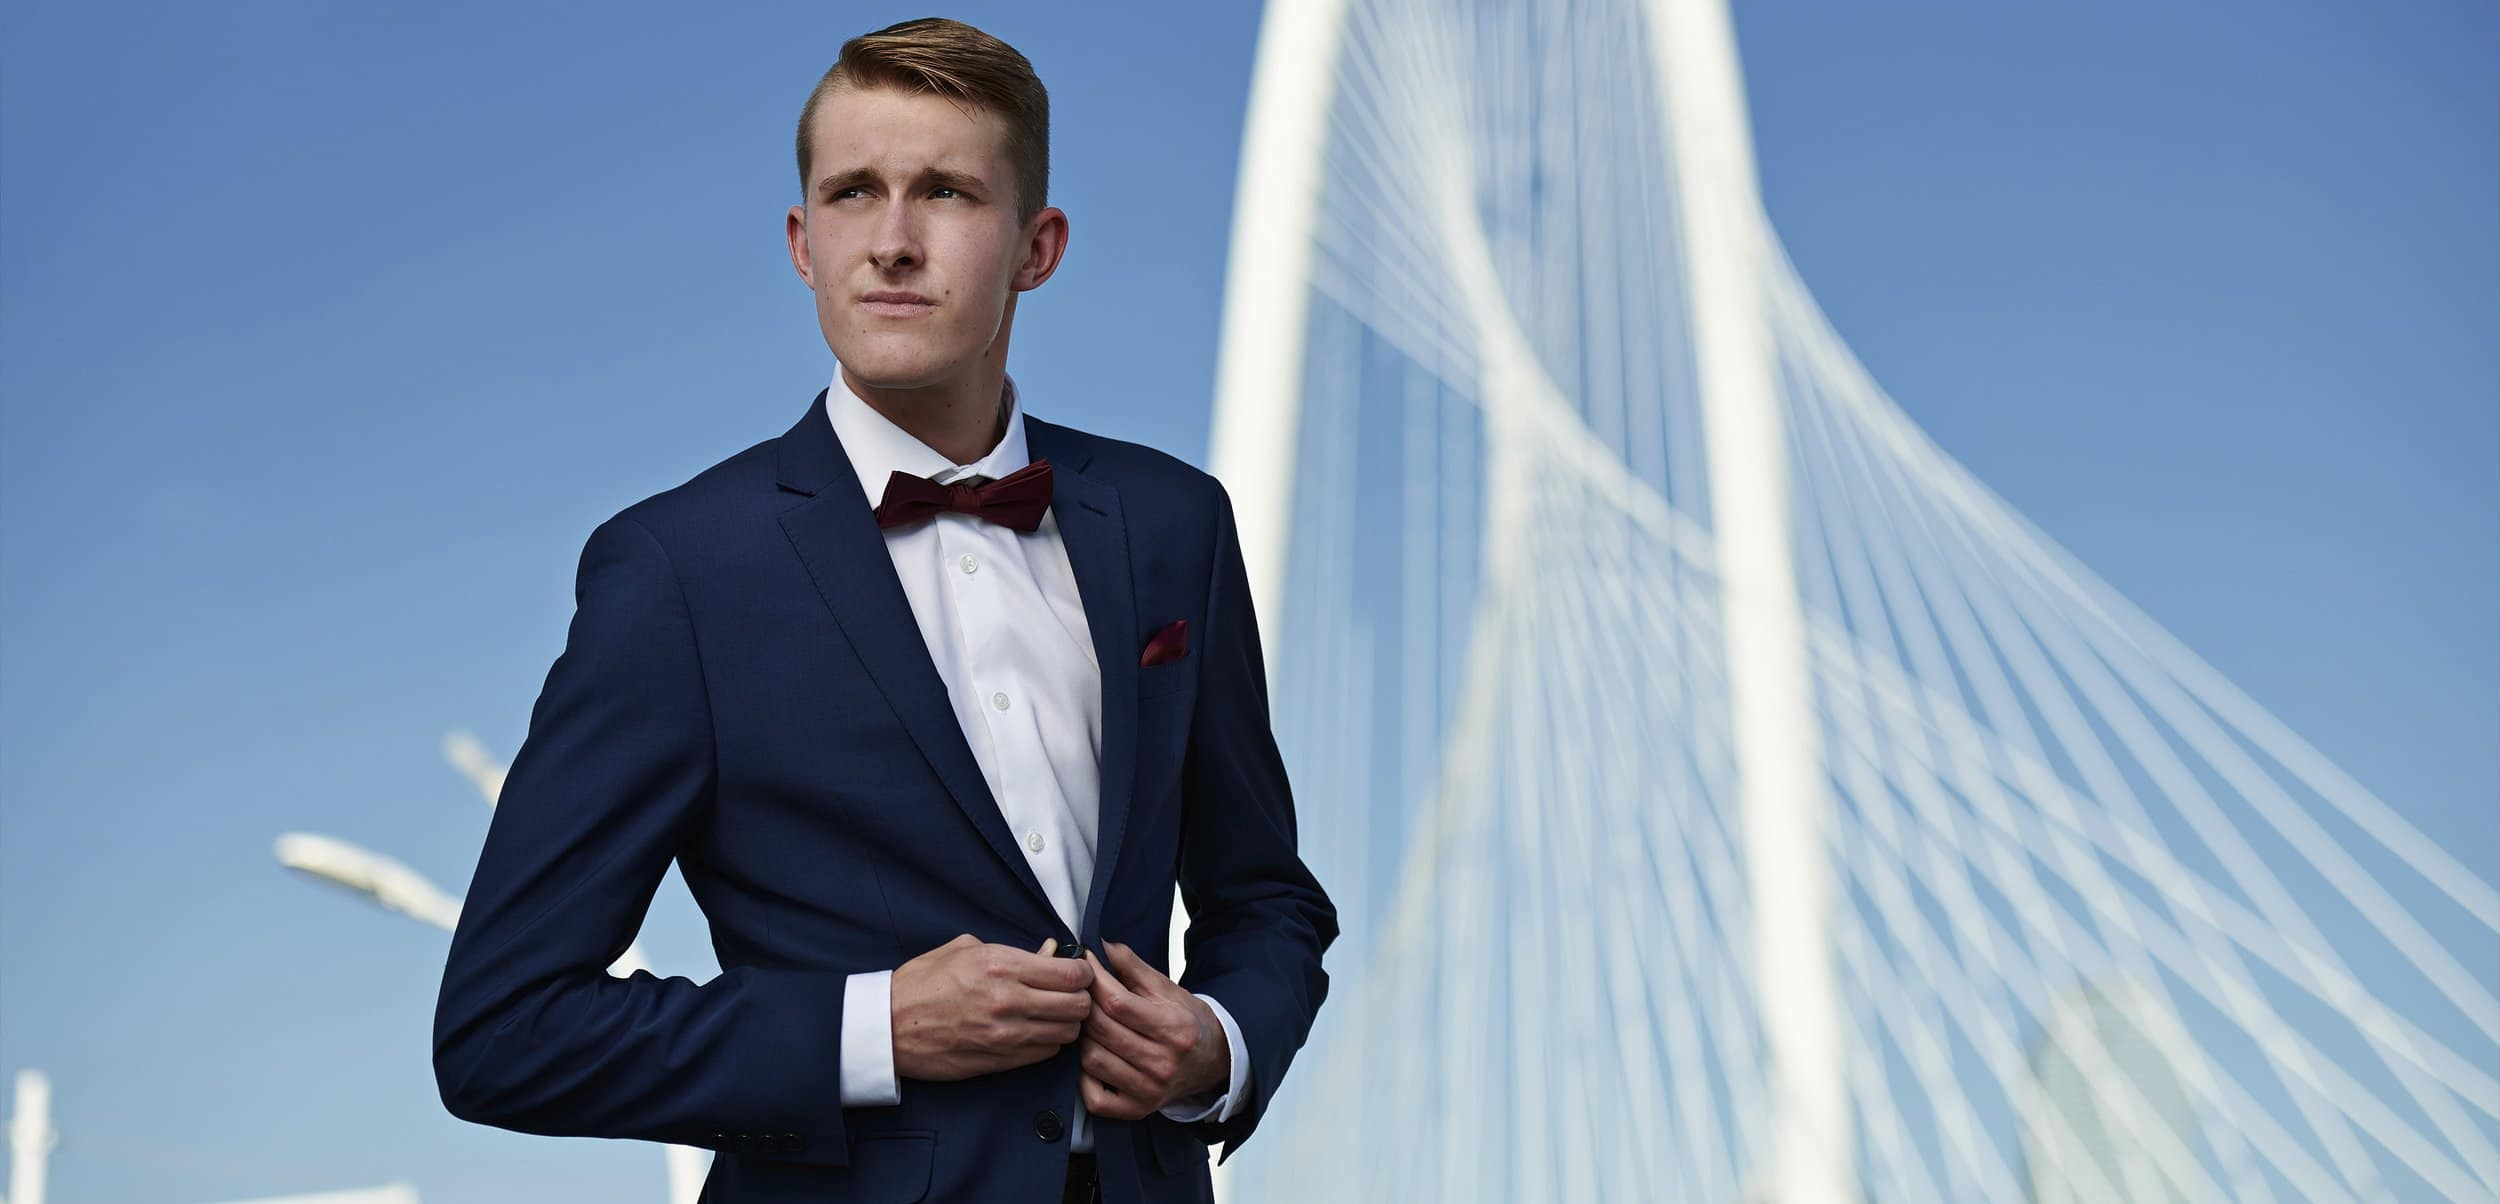 frisco liberty senior pictures in dallas blue suit hunt hill bridge banner